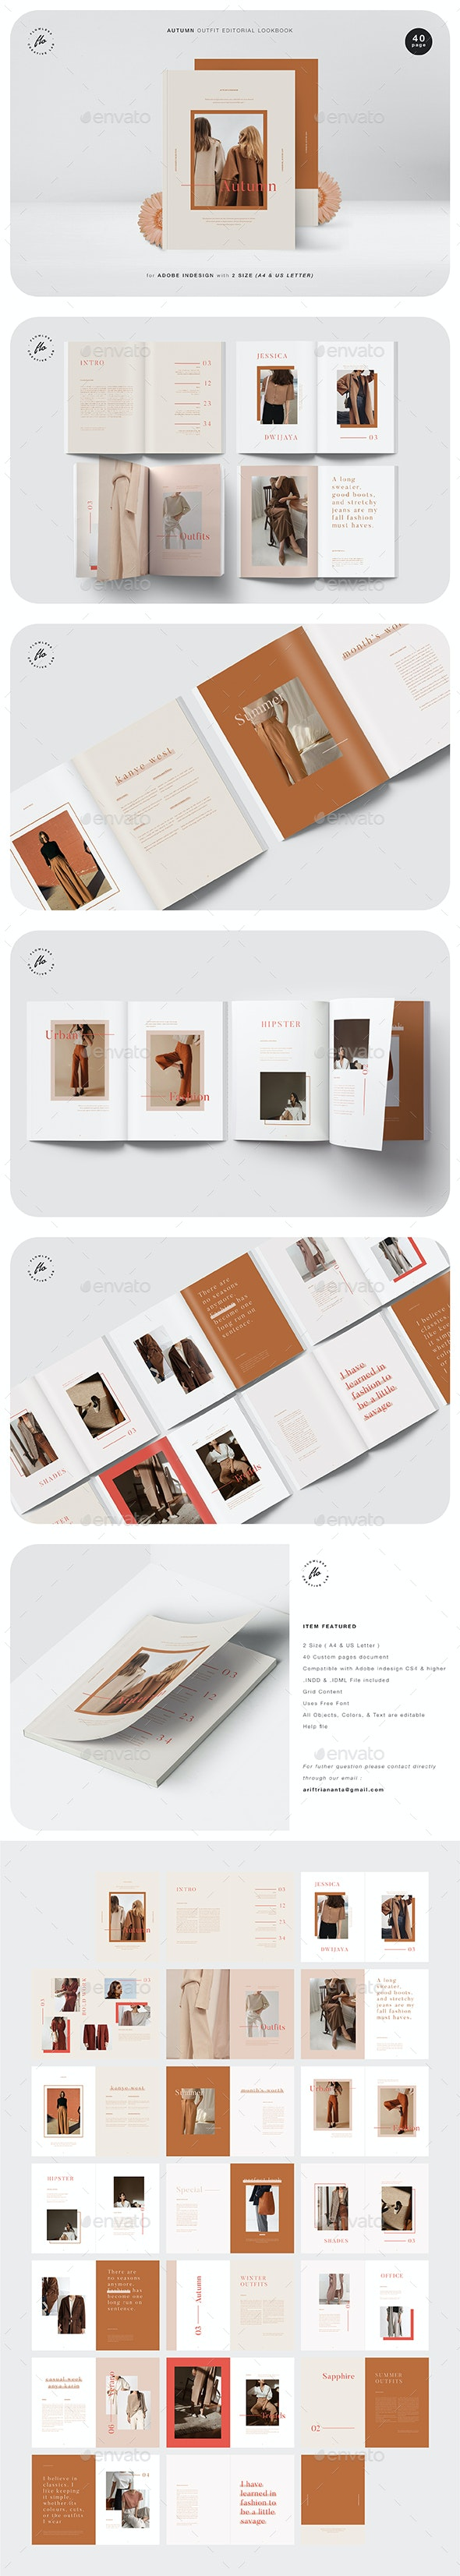 Autumn Outfit Editorial Lookbook - Magazines Print Templates